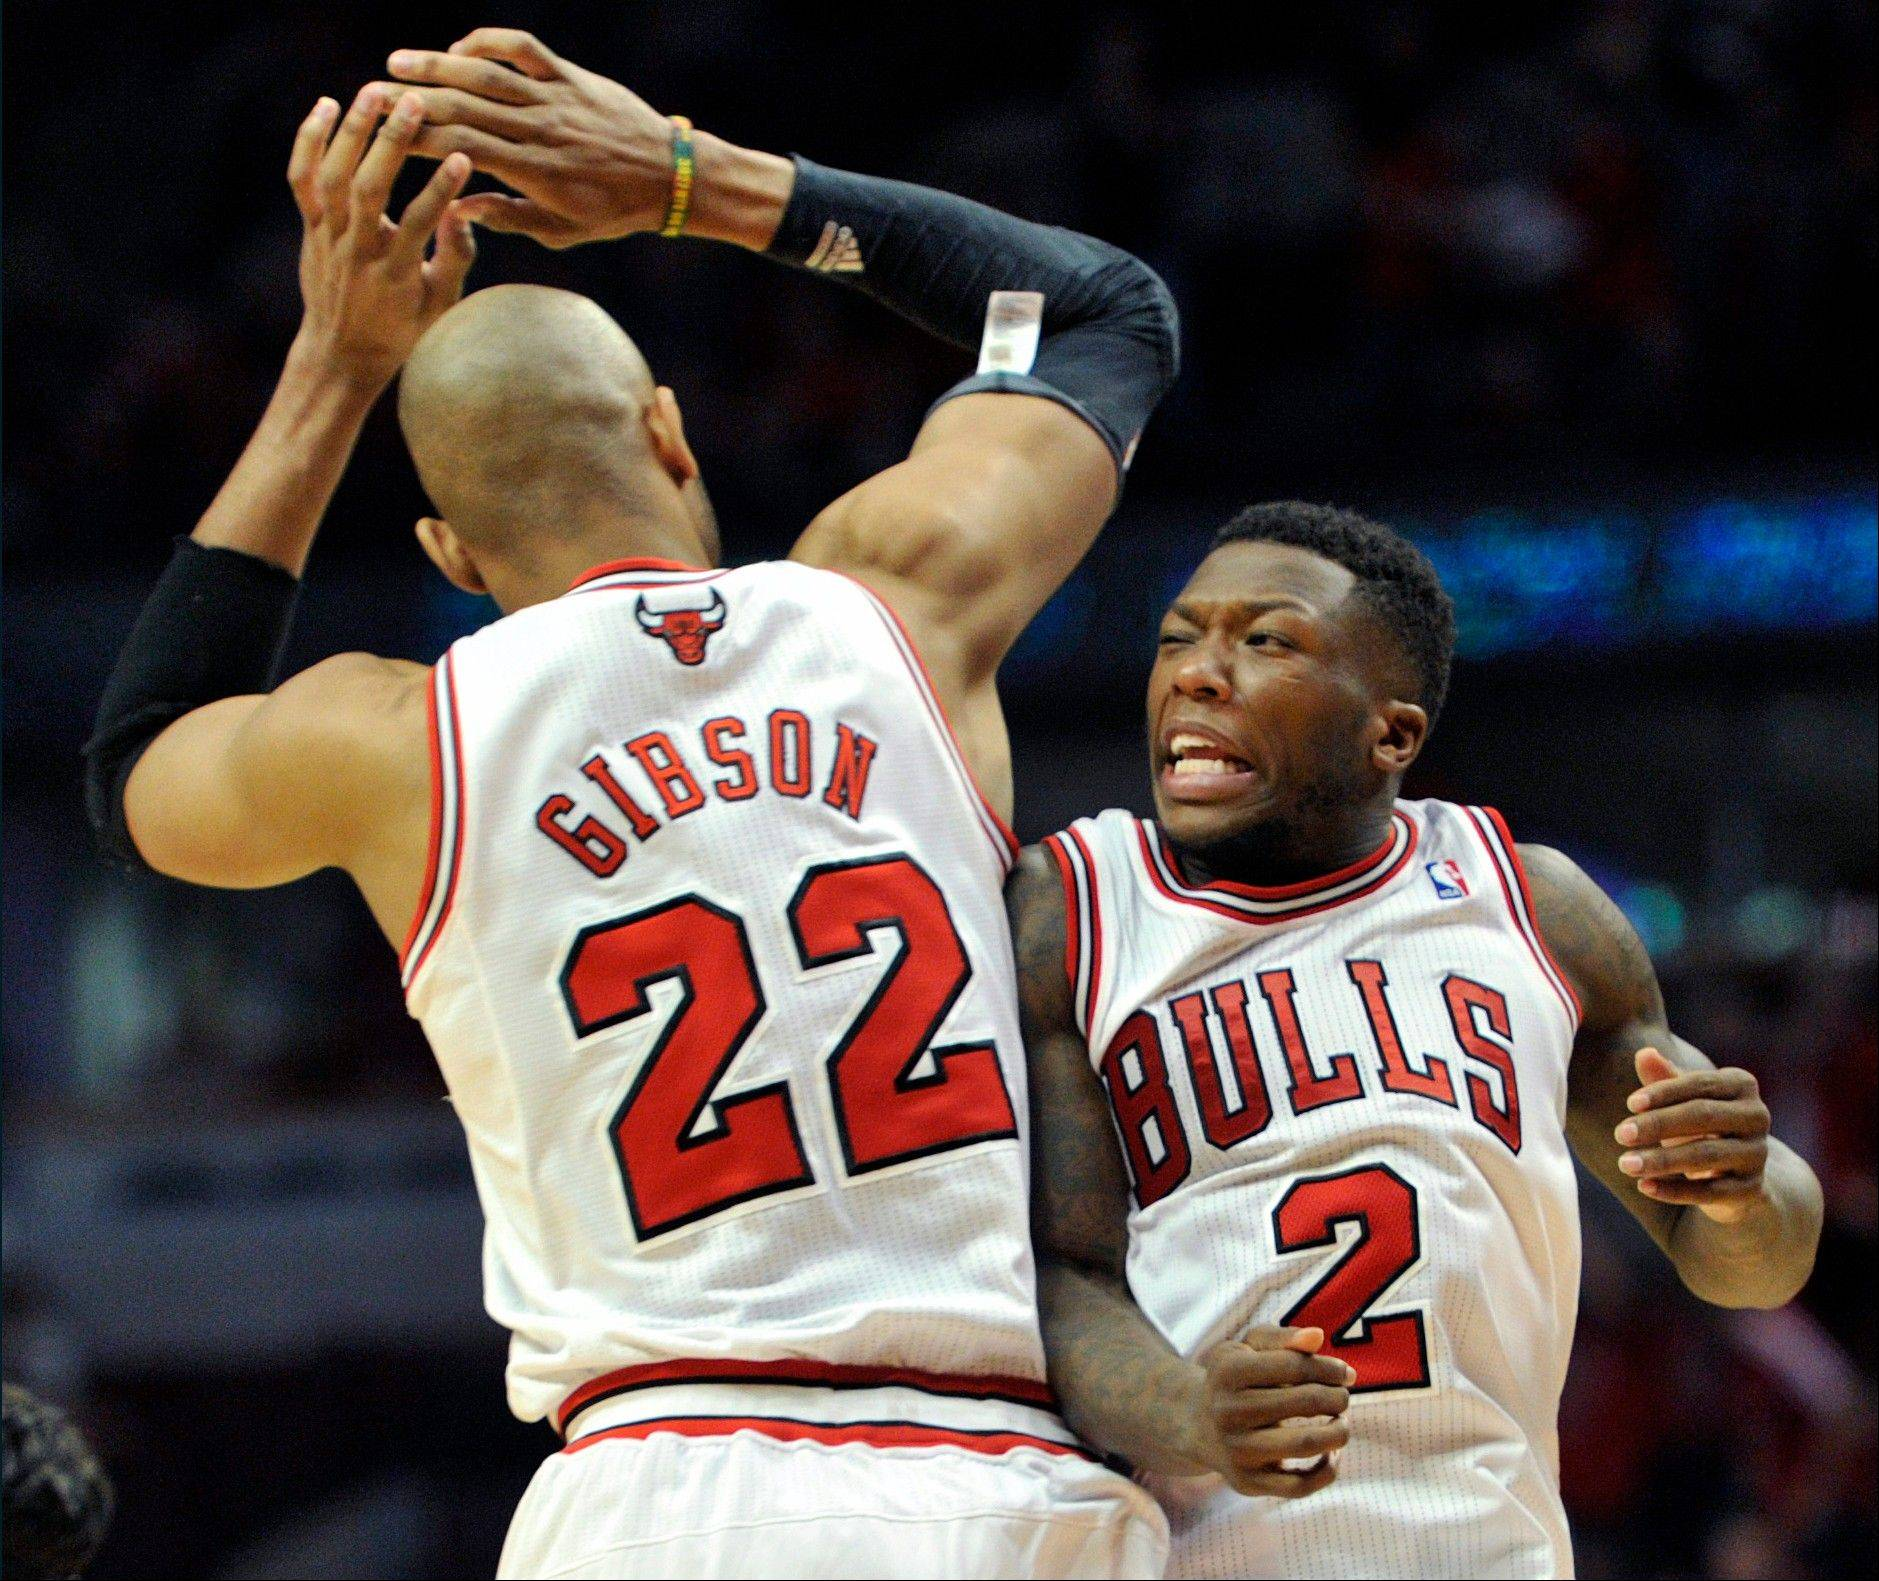 Chicago Bulls' Taj Gibson (22) and Nate Robinson (2) celebrate a basket against the Brooklyn Nets during the second overtime in Game 4 of their first-round NBA basketball playoff series Saturday, April 27, 2013, in Chicago. The Bulls won 142-134 in three overtimes.